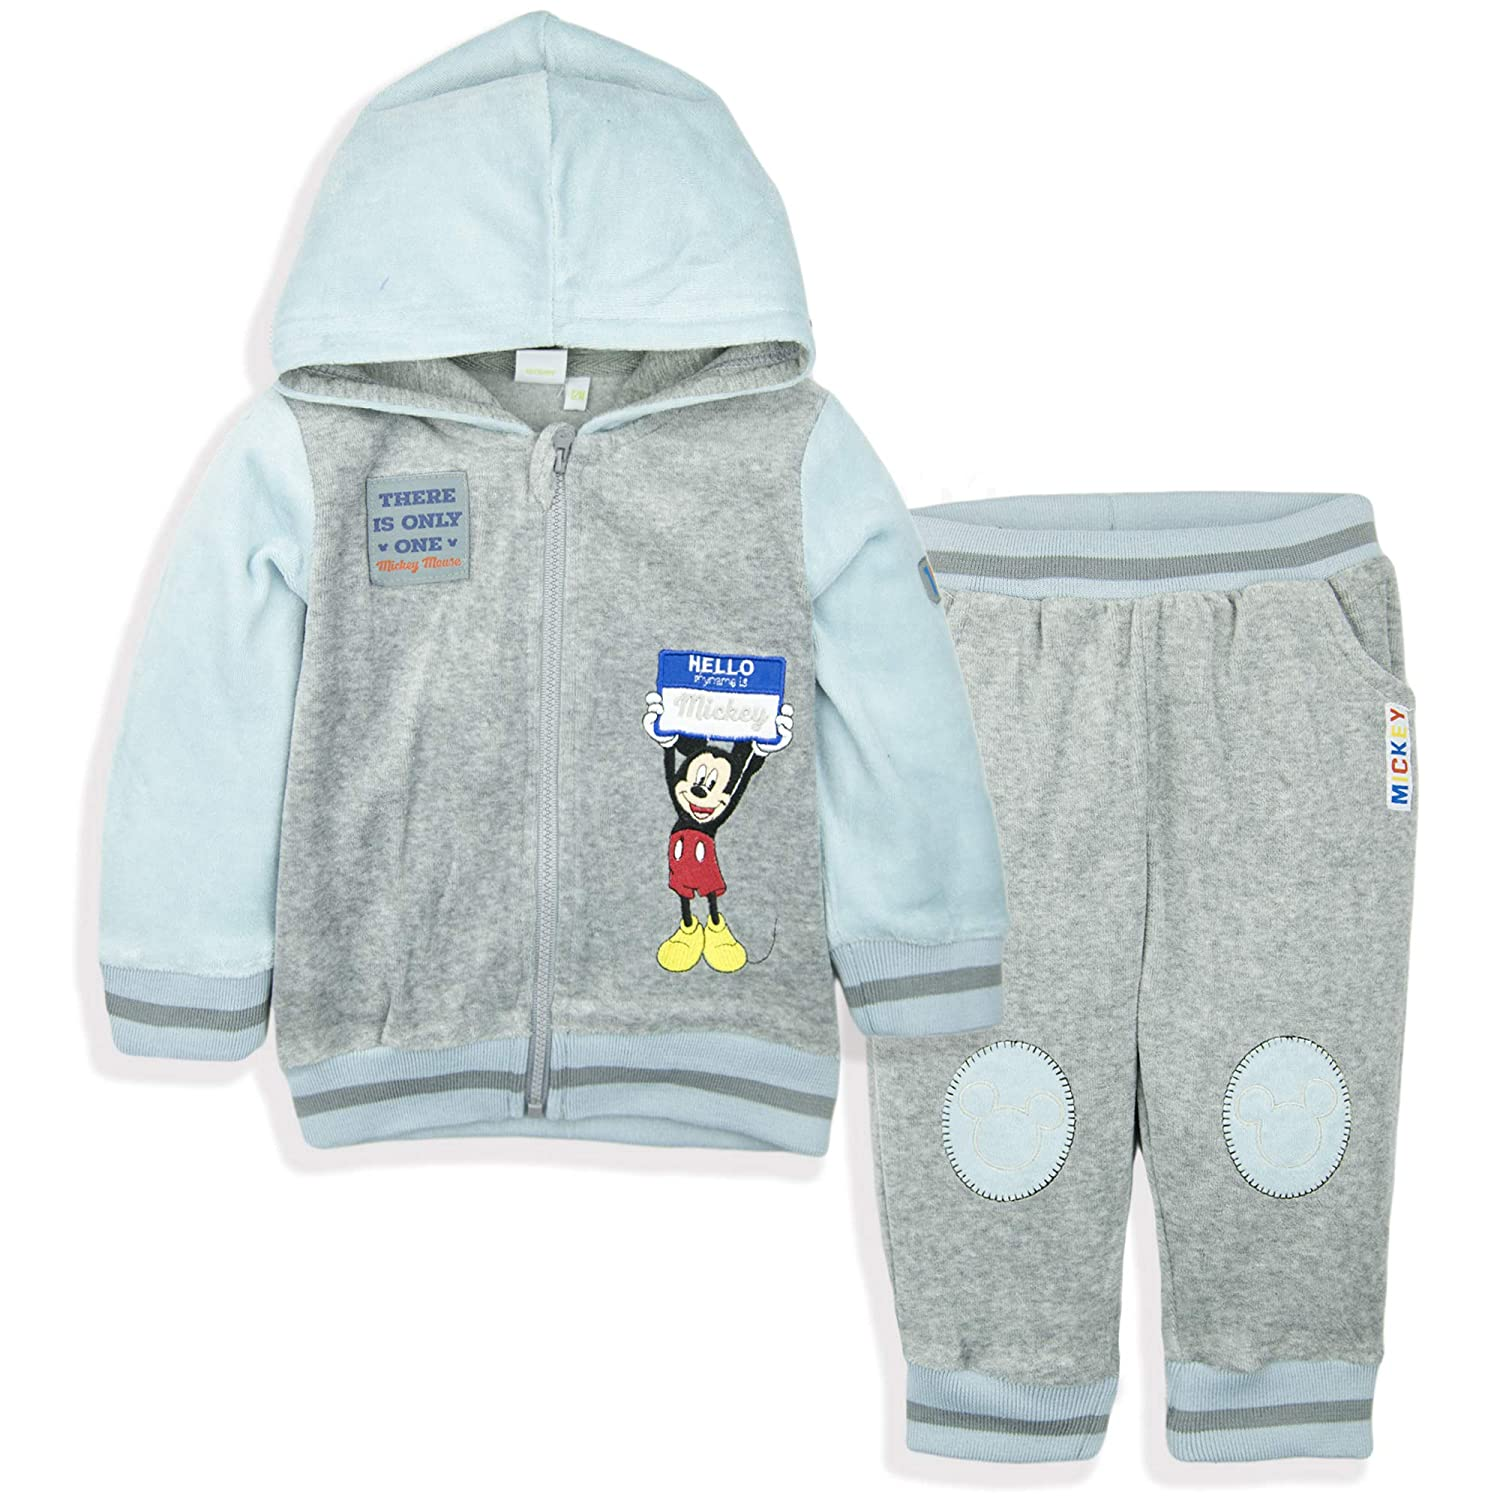 Disney Mickey Mouse Baby Boys Clothing Outfit Tracksuit Set Joggers Hoodie Warm Velvet - Light Blue 18